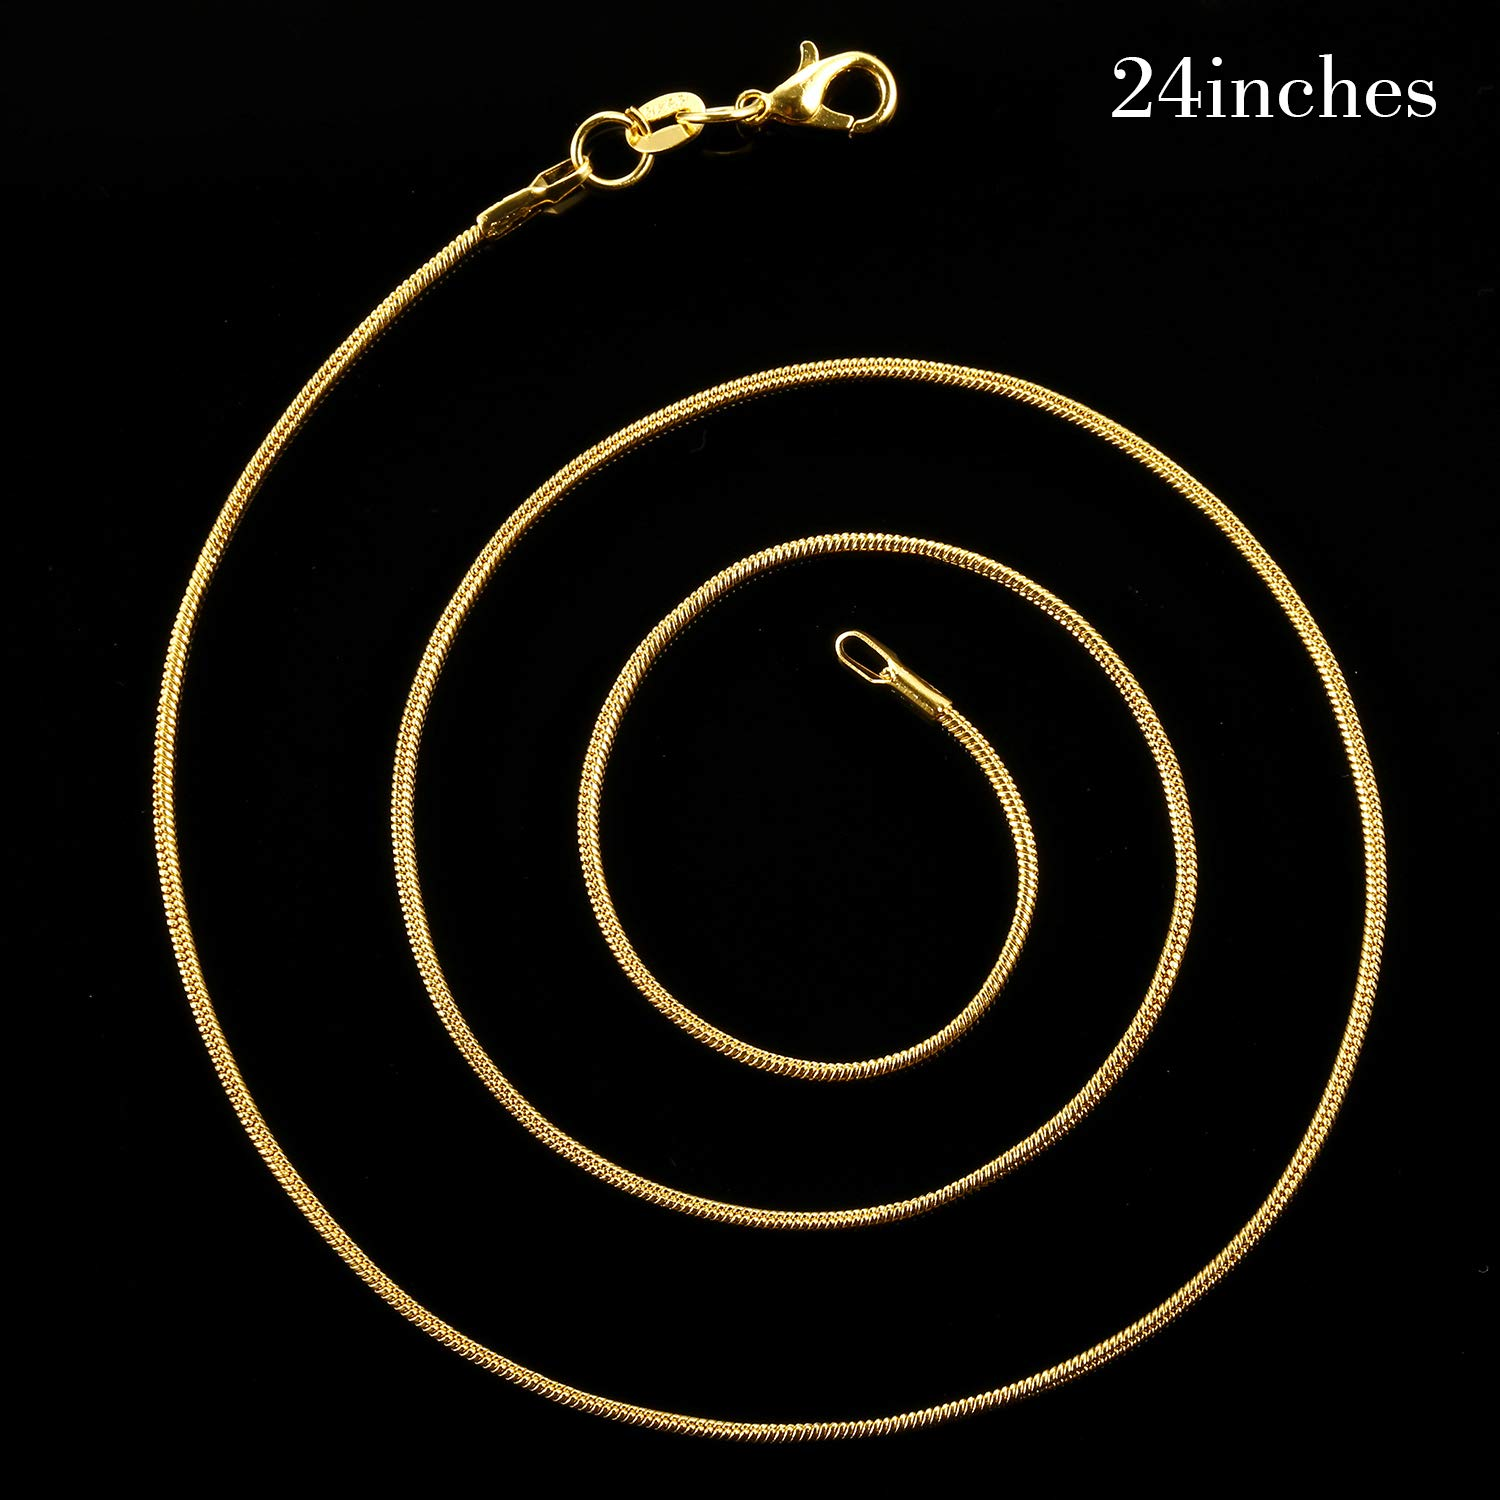 18 inches TecUnite 24 Pack Gold Plated DIY Snake Chain Necklace with Clasp for Jewelry Making 1.2 mm